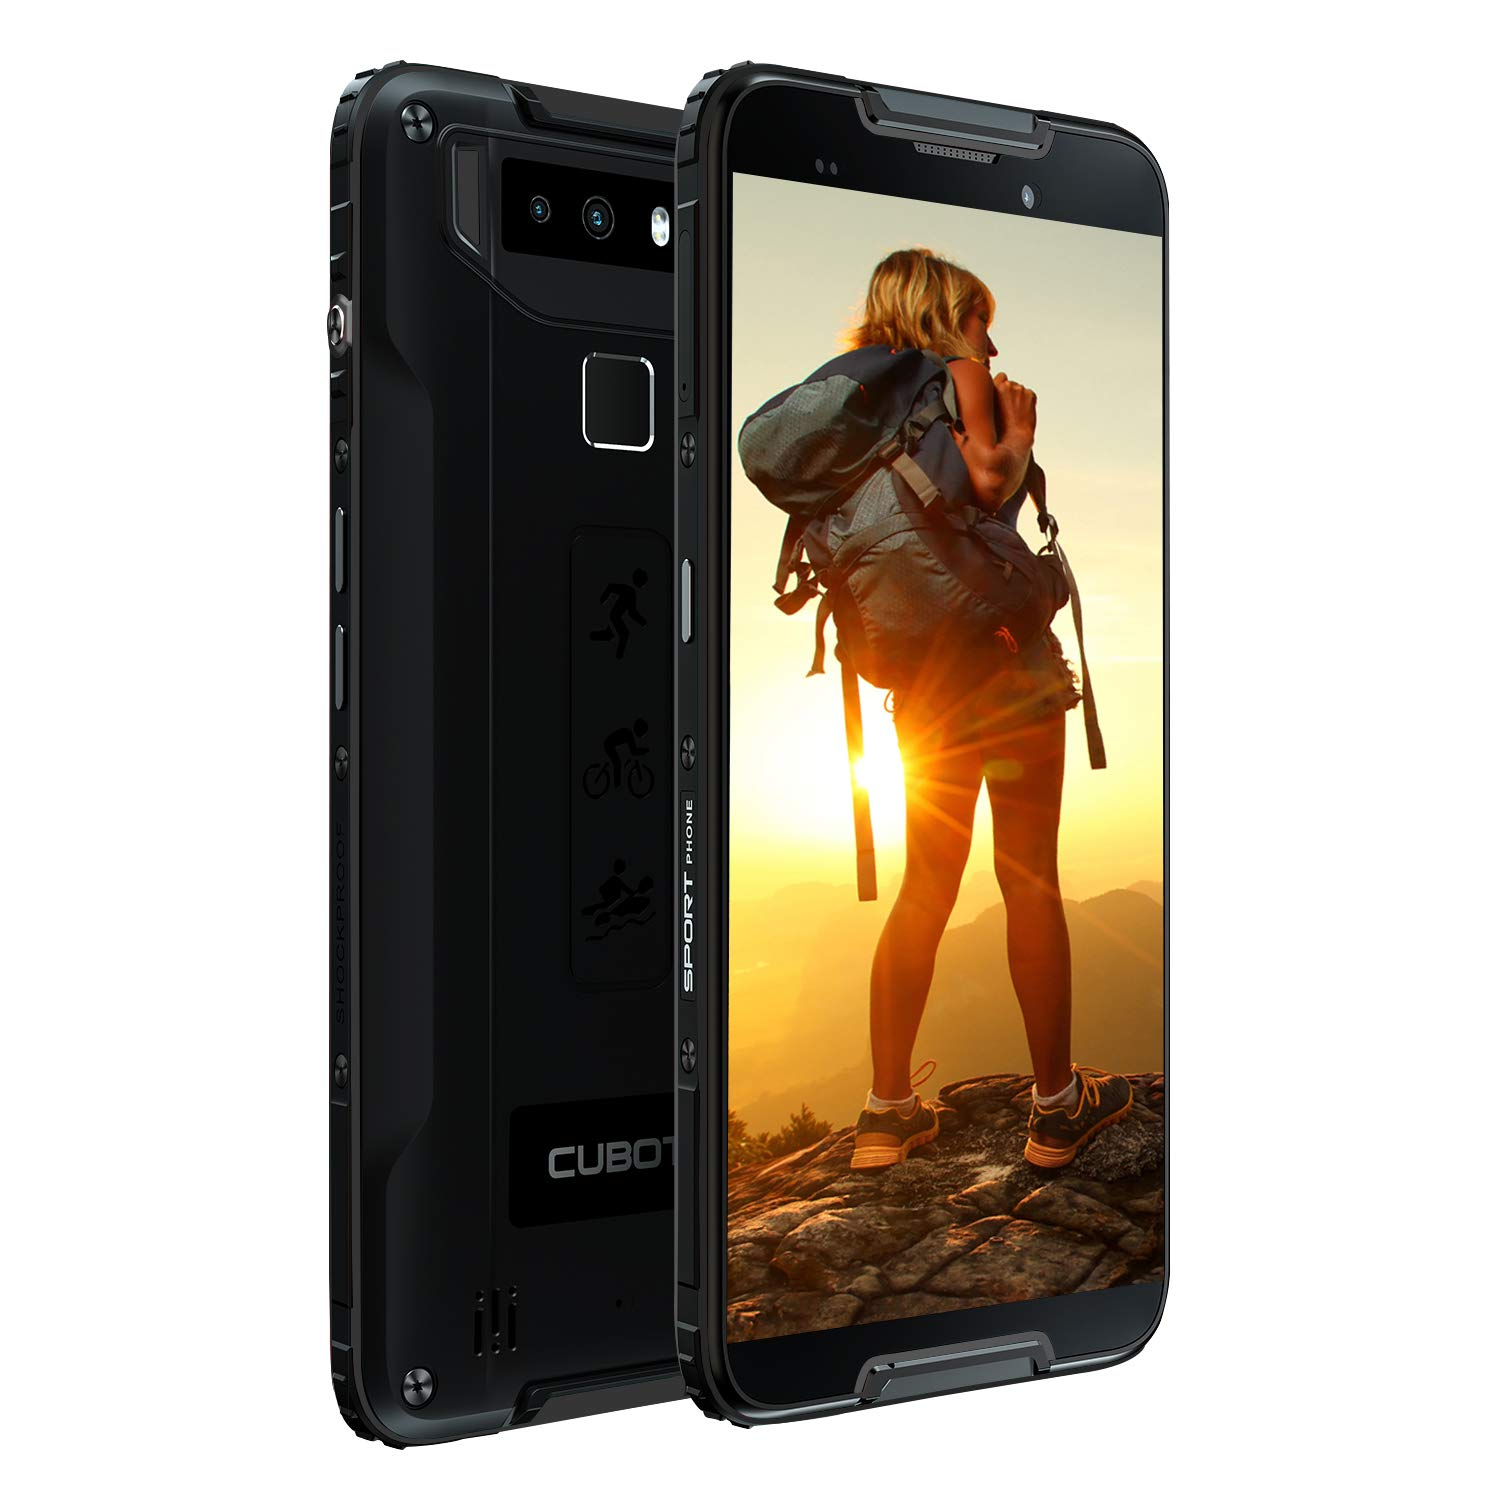 CUBOT Quest 5 5-inch Android 9 0 Pie Rugged Smartphone Unlocked,  4GB+64GB,4G Dual SIM, NFC,Gyroscope, 4000mAh Battery, 12MP Camera, IP68  Waterproof